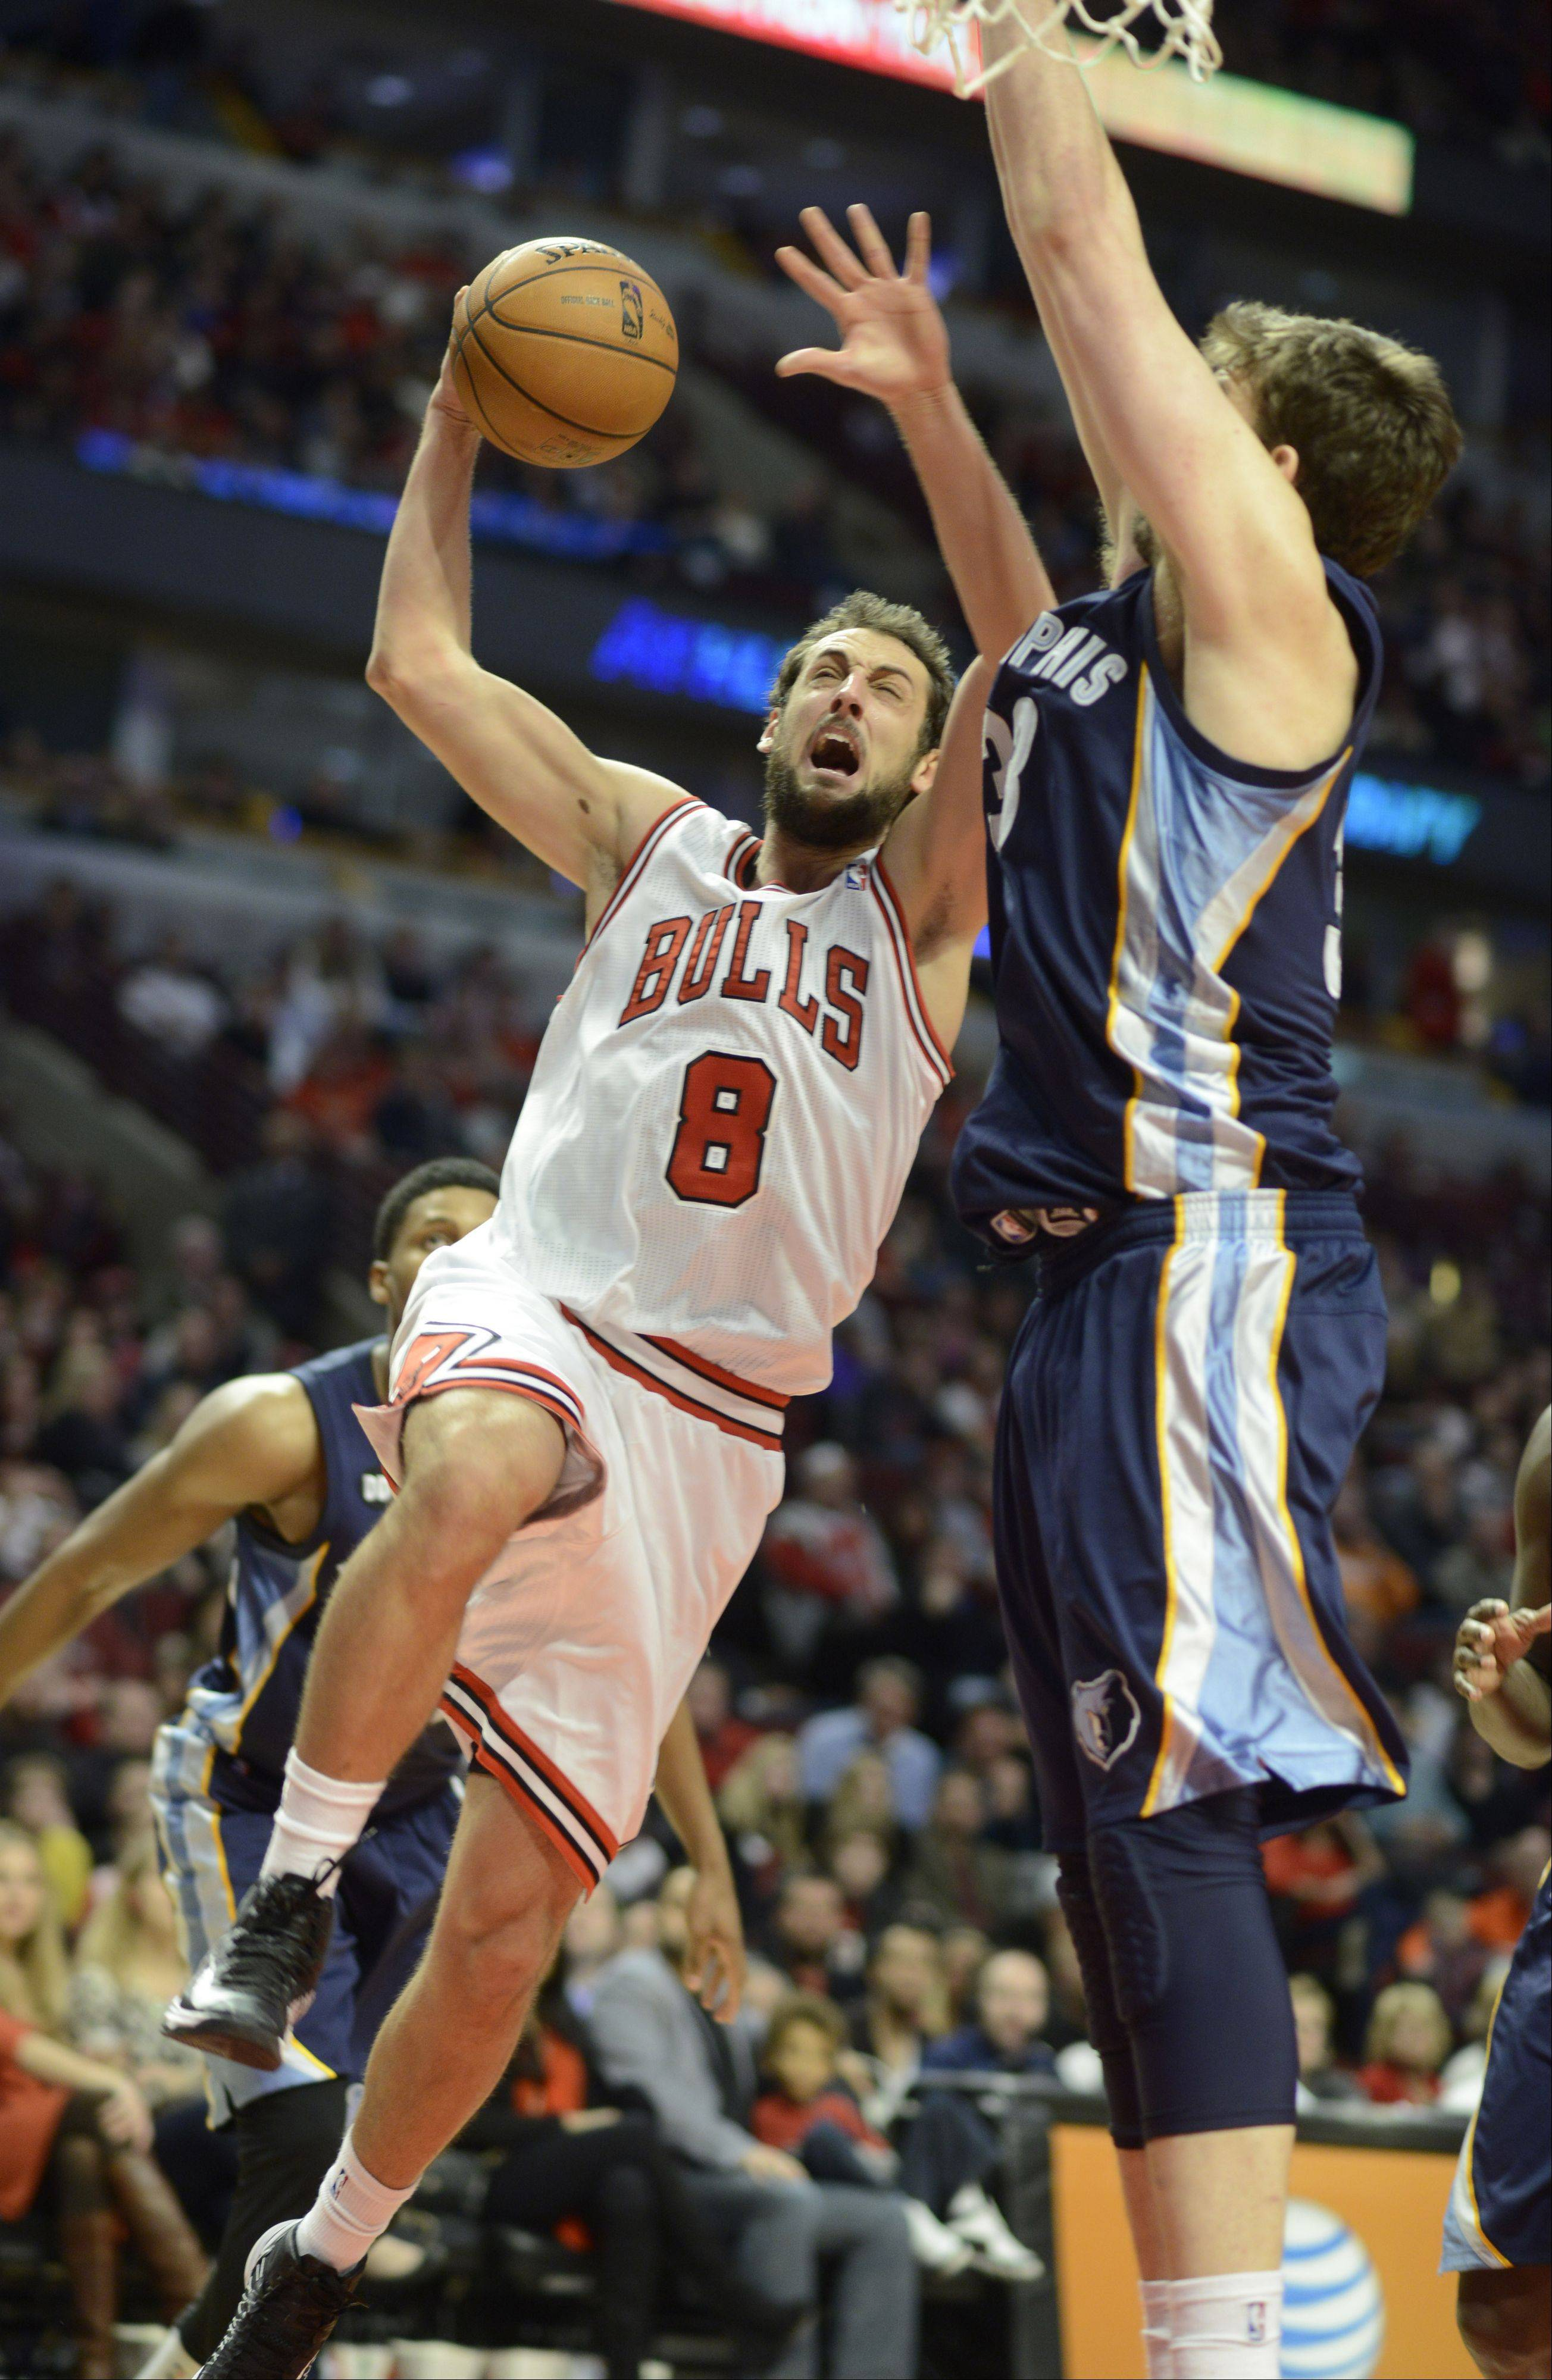 Marco Belinelli of the of the Bulls drives hard to the basket against Marc Gasol of the Grizzlies during Saturday's game.